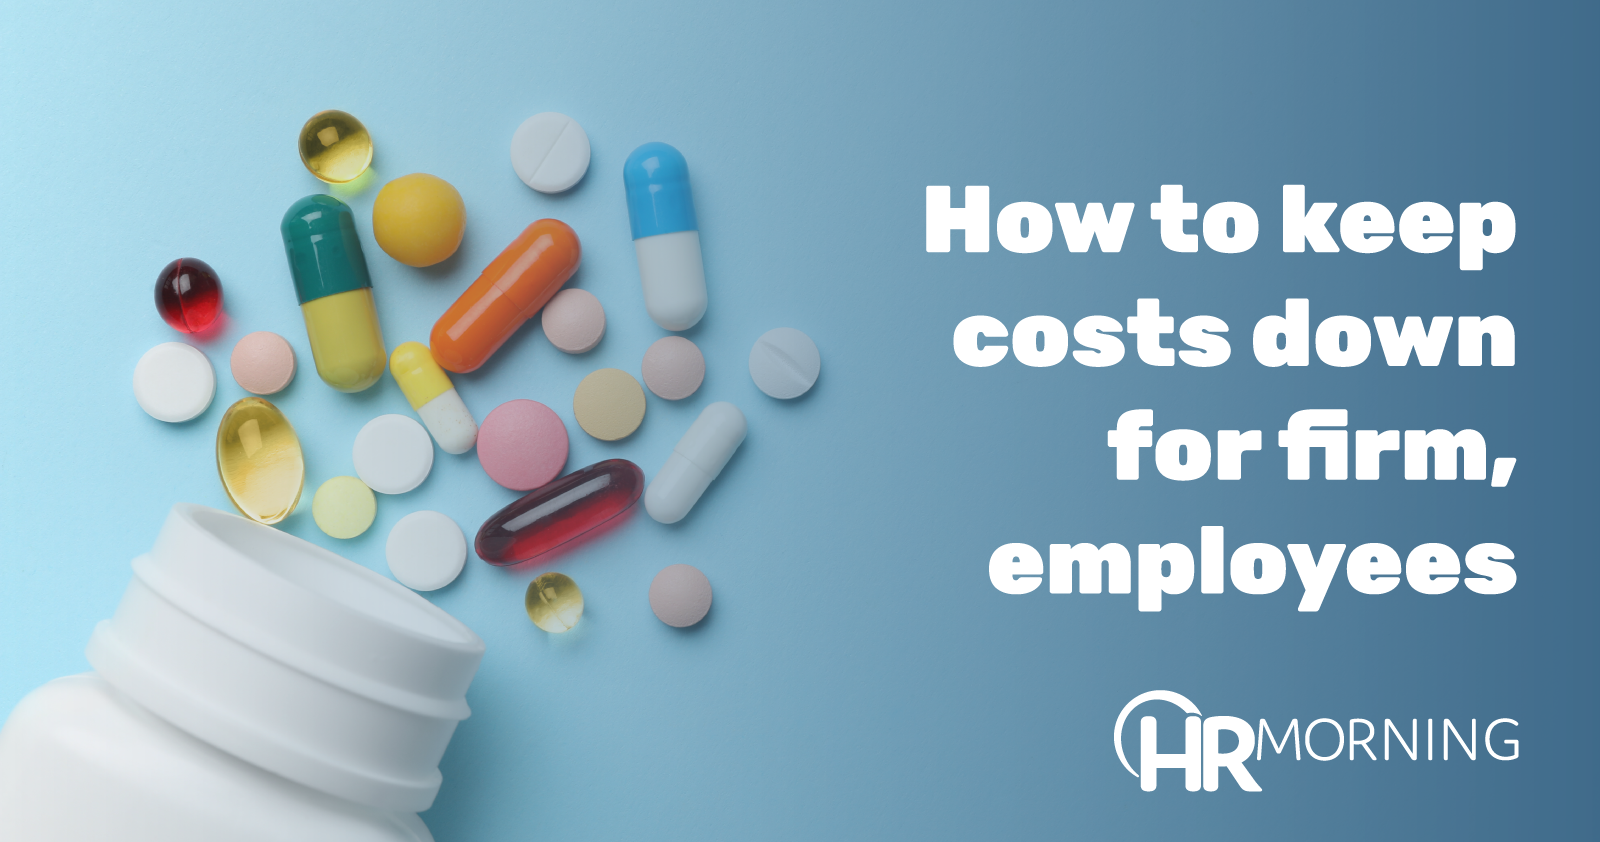 How To Keep Costs Down For Firm Employees